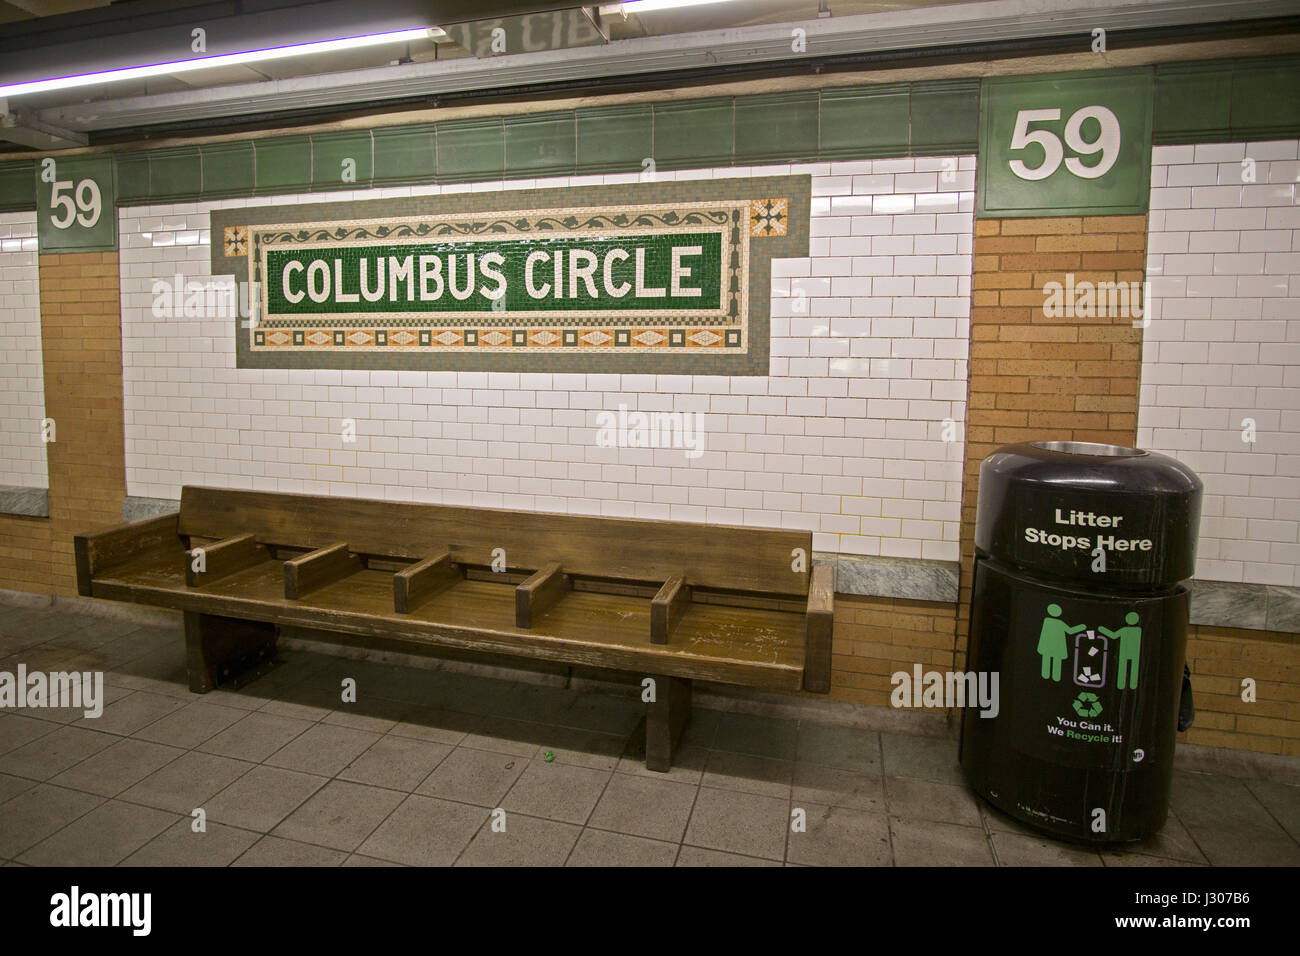 A Beautiful Mosaic Sign At The 59th Street Columbus Circle Subway Platform In Midtown Manhattan New York City